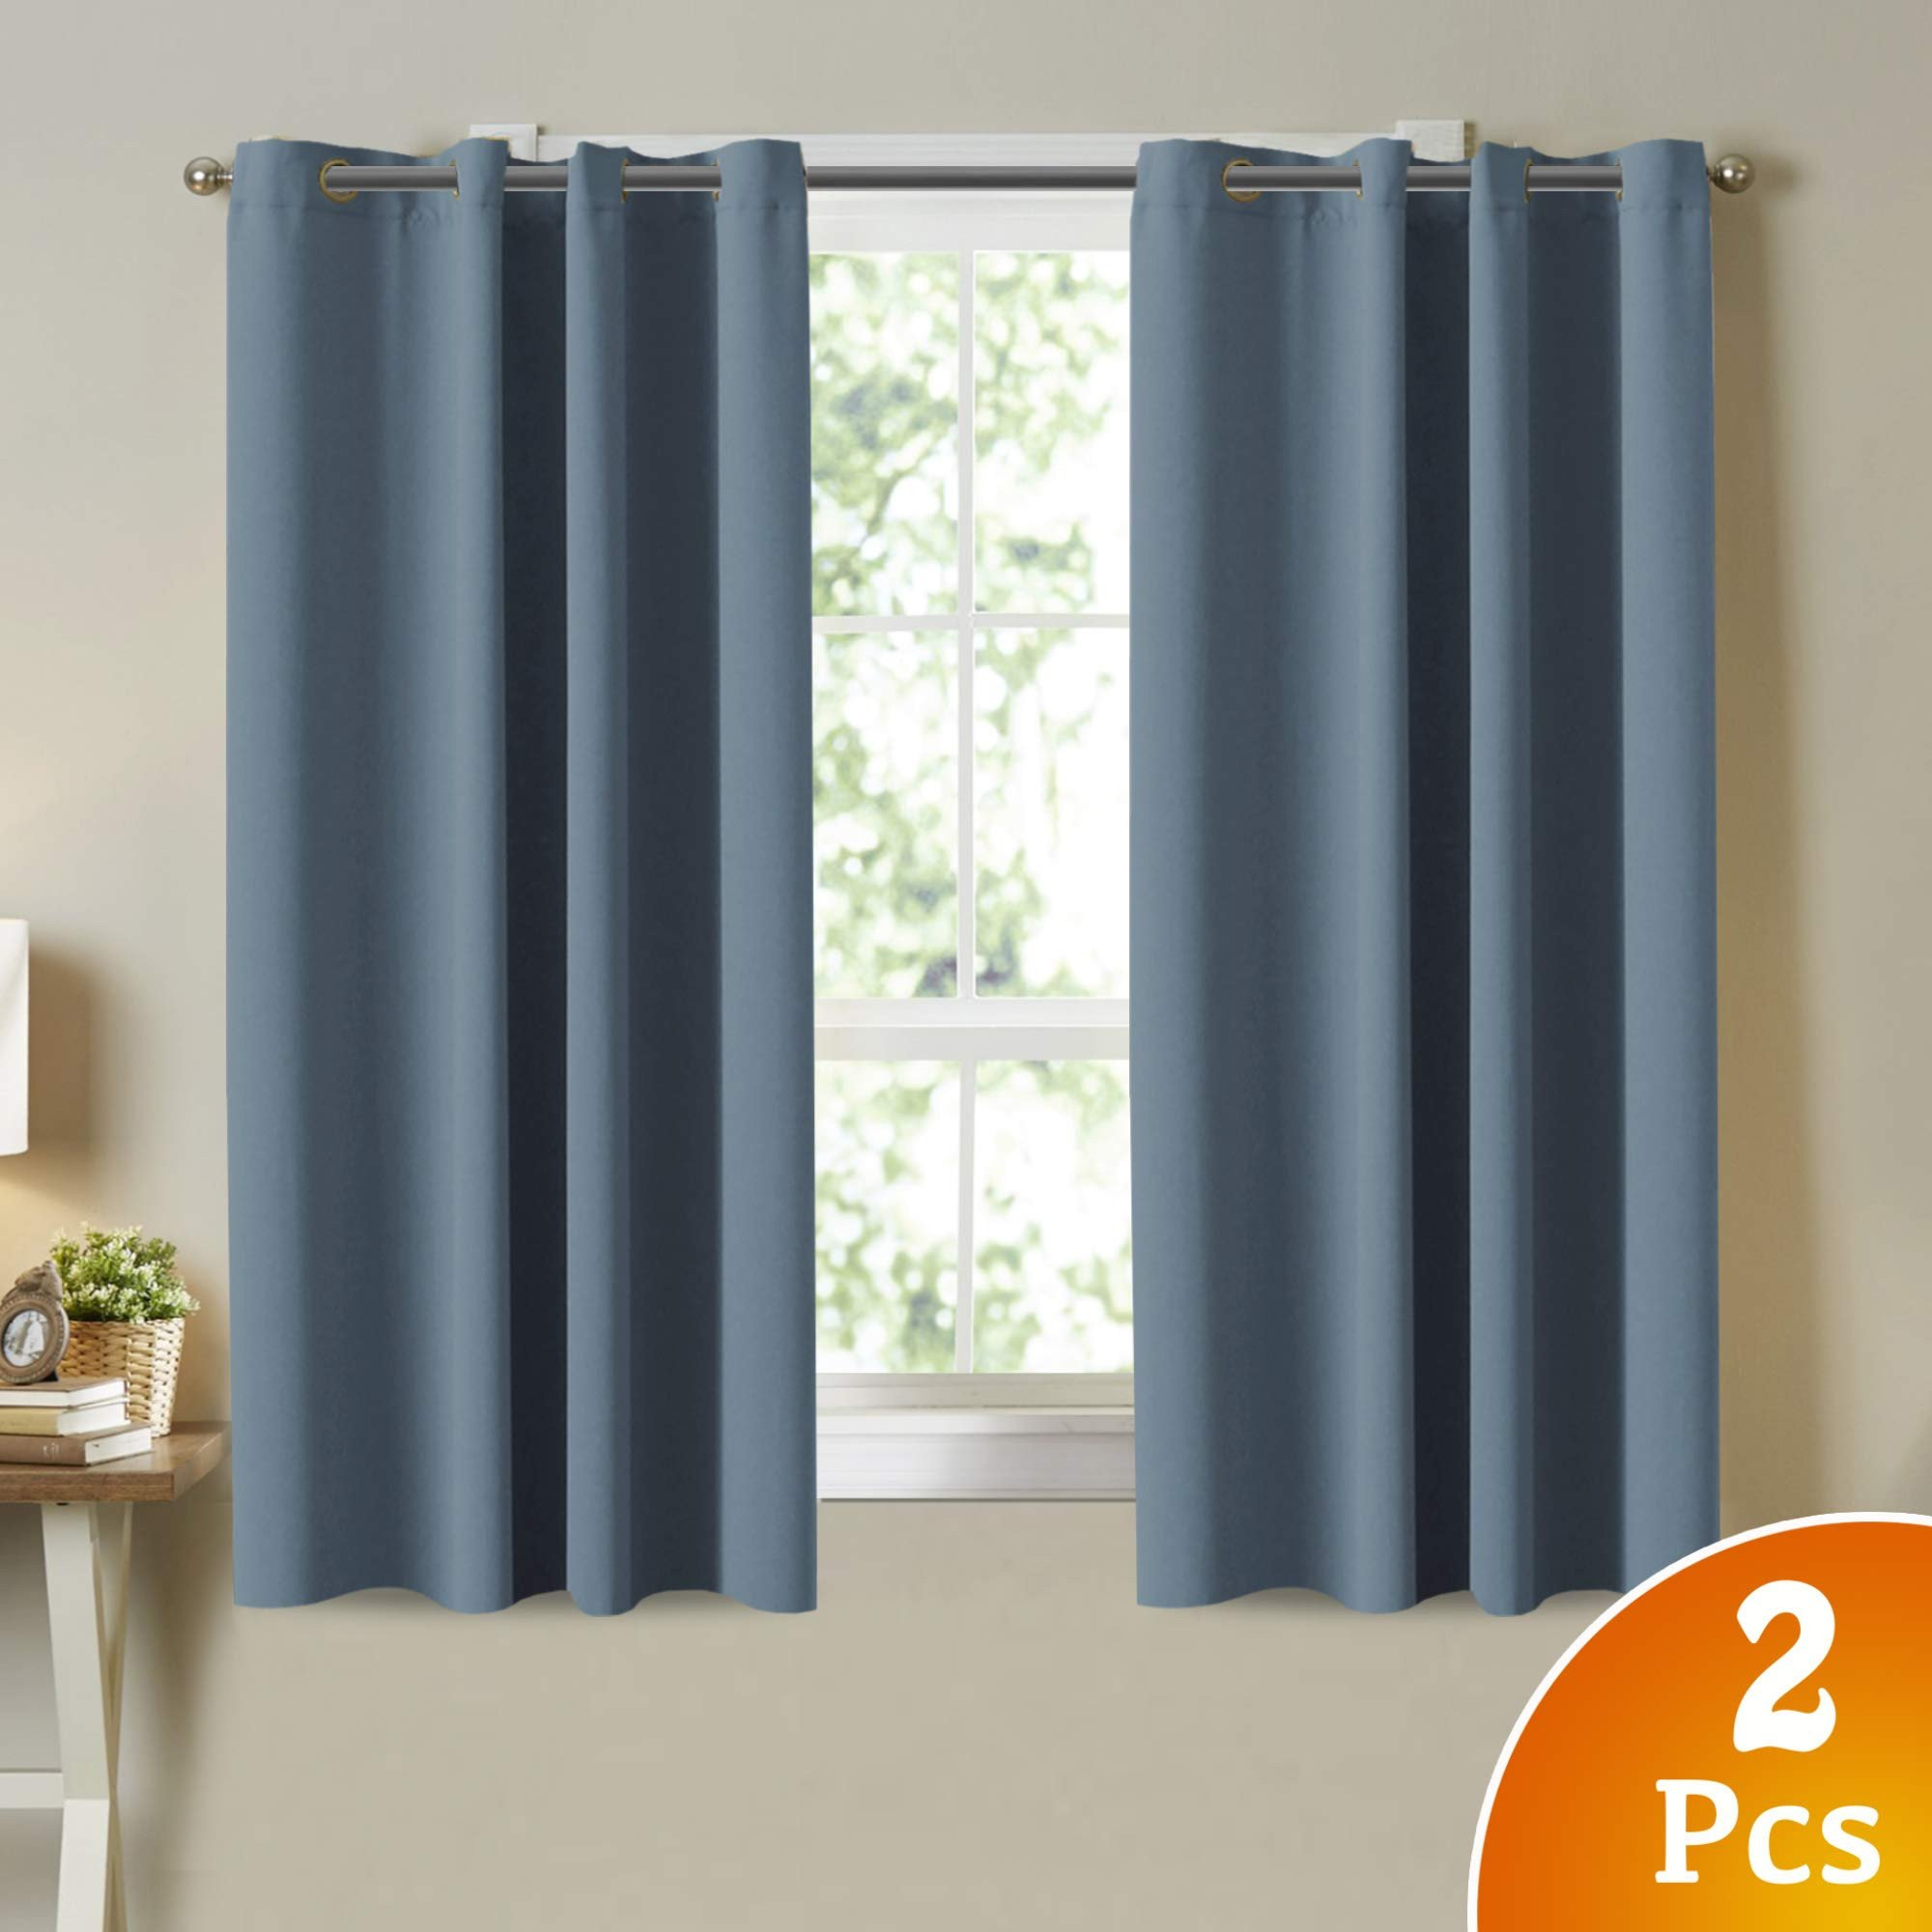 Navy Blue Curtains for Bedroom Inspirational Details About Blackout Room Darkening Grommet Curtains Citadel Blue Grey 52 X 63 Curtain 2pcs